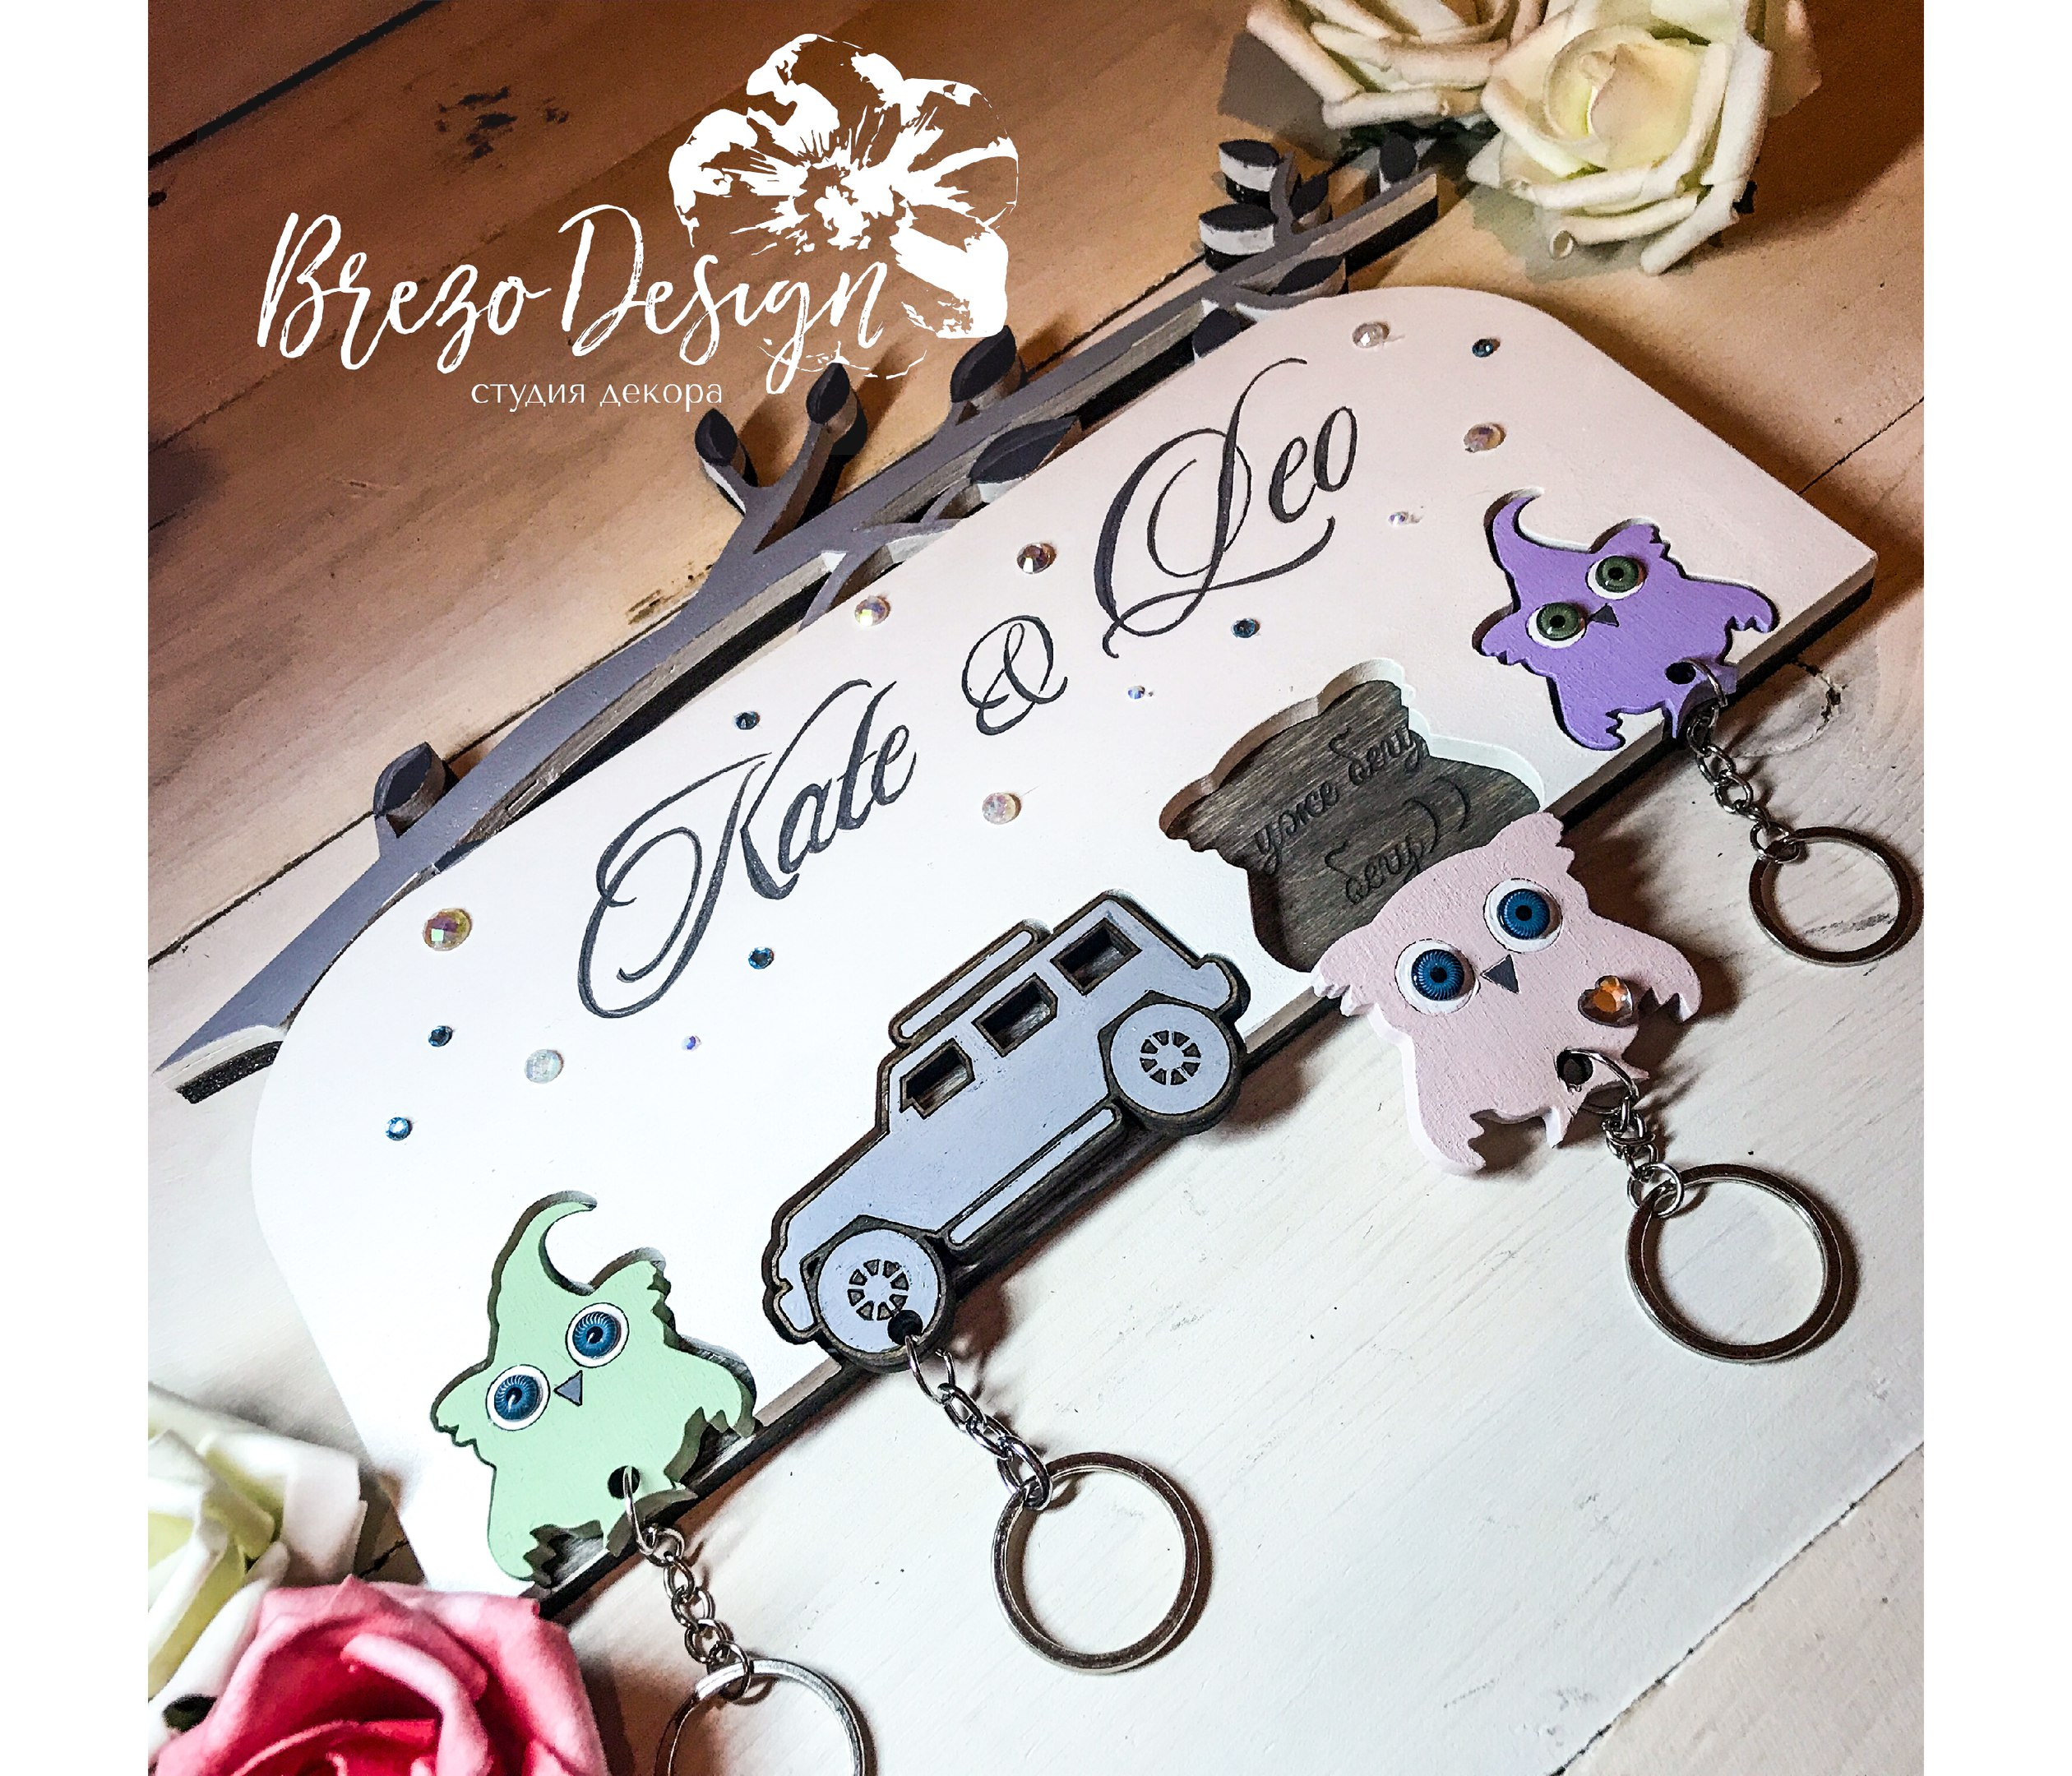 Personalized Key Holder 2 Free CDR Vectors Art